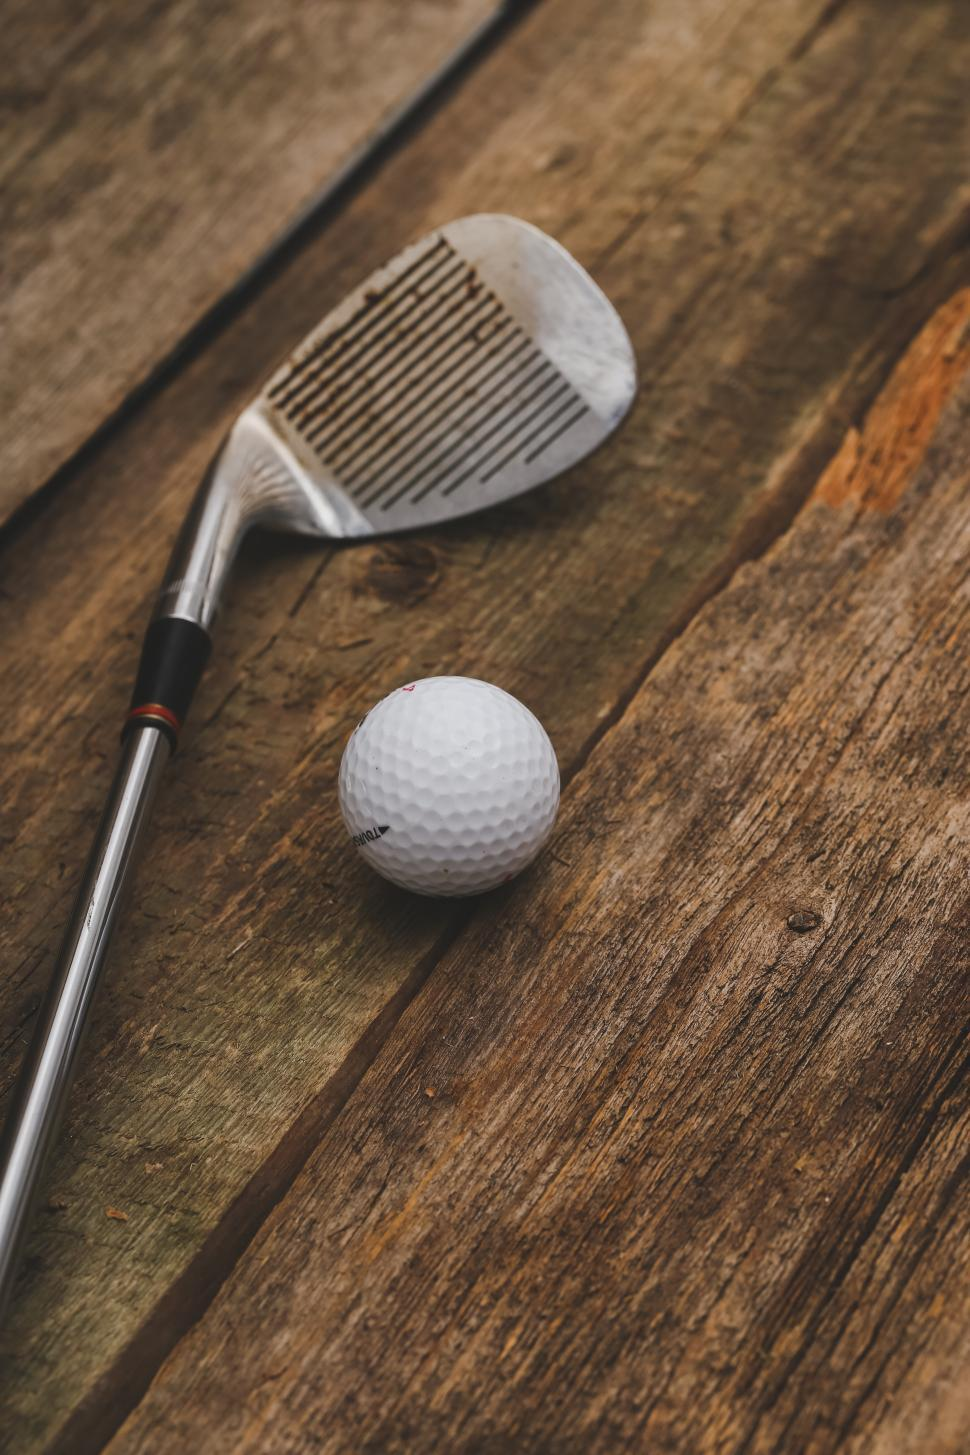 Download Free Stock Photo of Golf club and ball on textured background